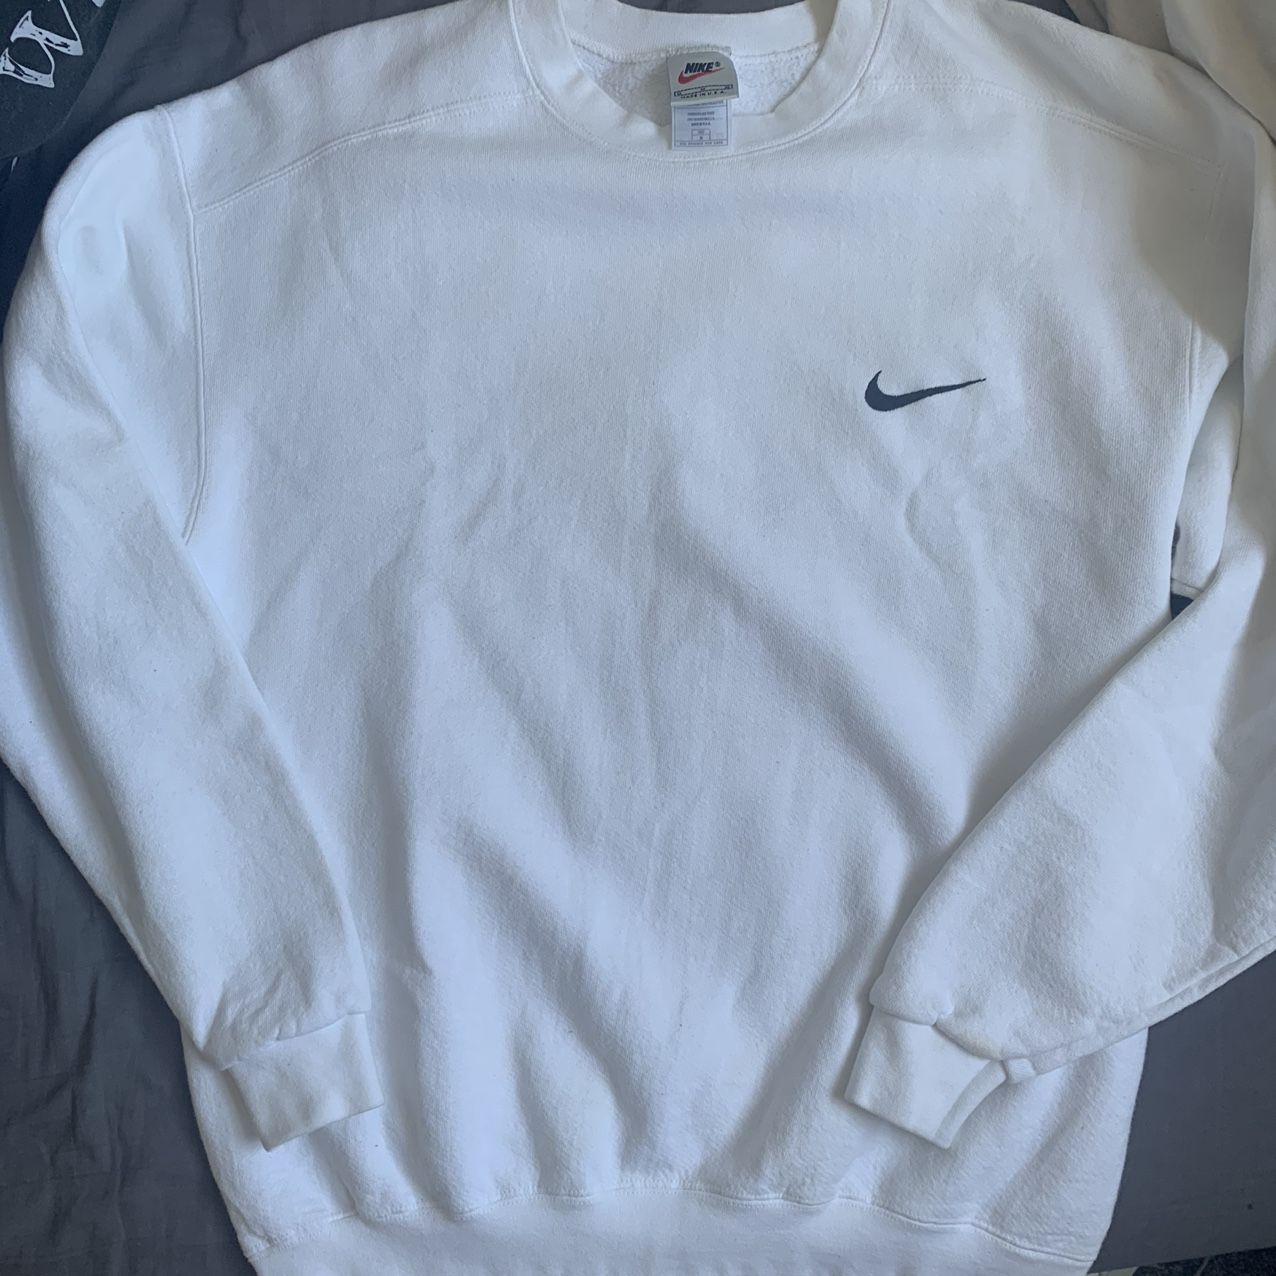 White Nike Sweatshirt Stain On The Sleeve But Depop White Nike Sweatshirt White Nikes Nike Sweatshirts [ 1276 x 1276 Pixel ]